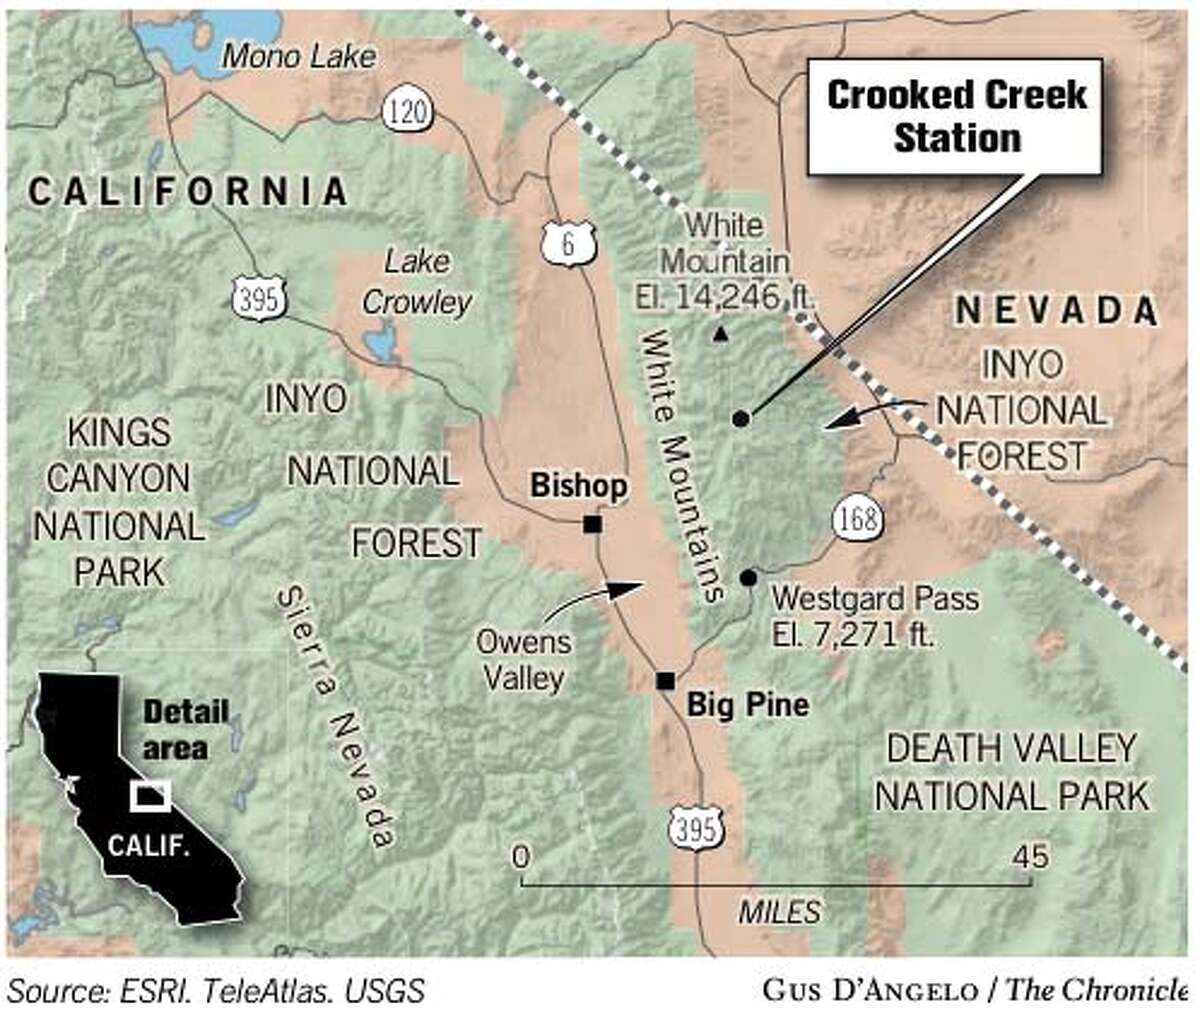 Crooked Creek Station. Chronicle graphic by Gus D'Angelo